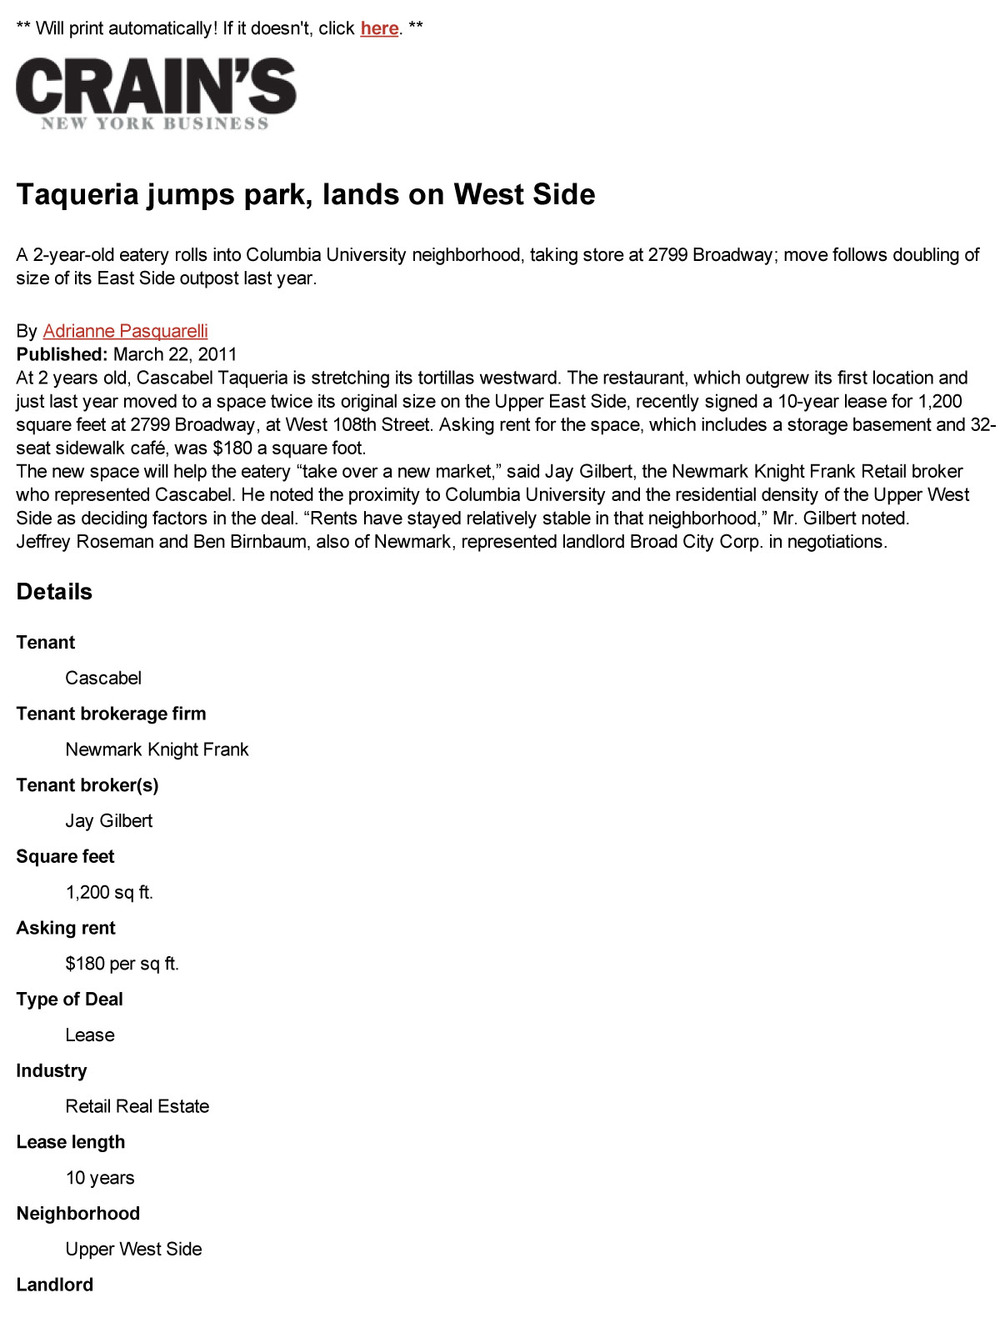 Taqueria jumps park, lands on West Side - Real Estate Deals _ Crain's New York Business.jpg